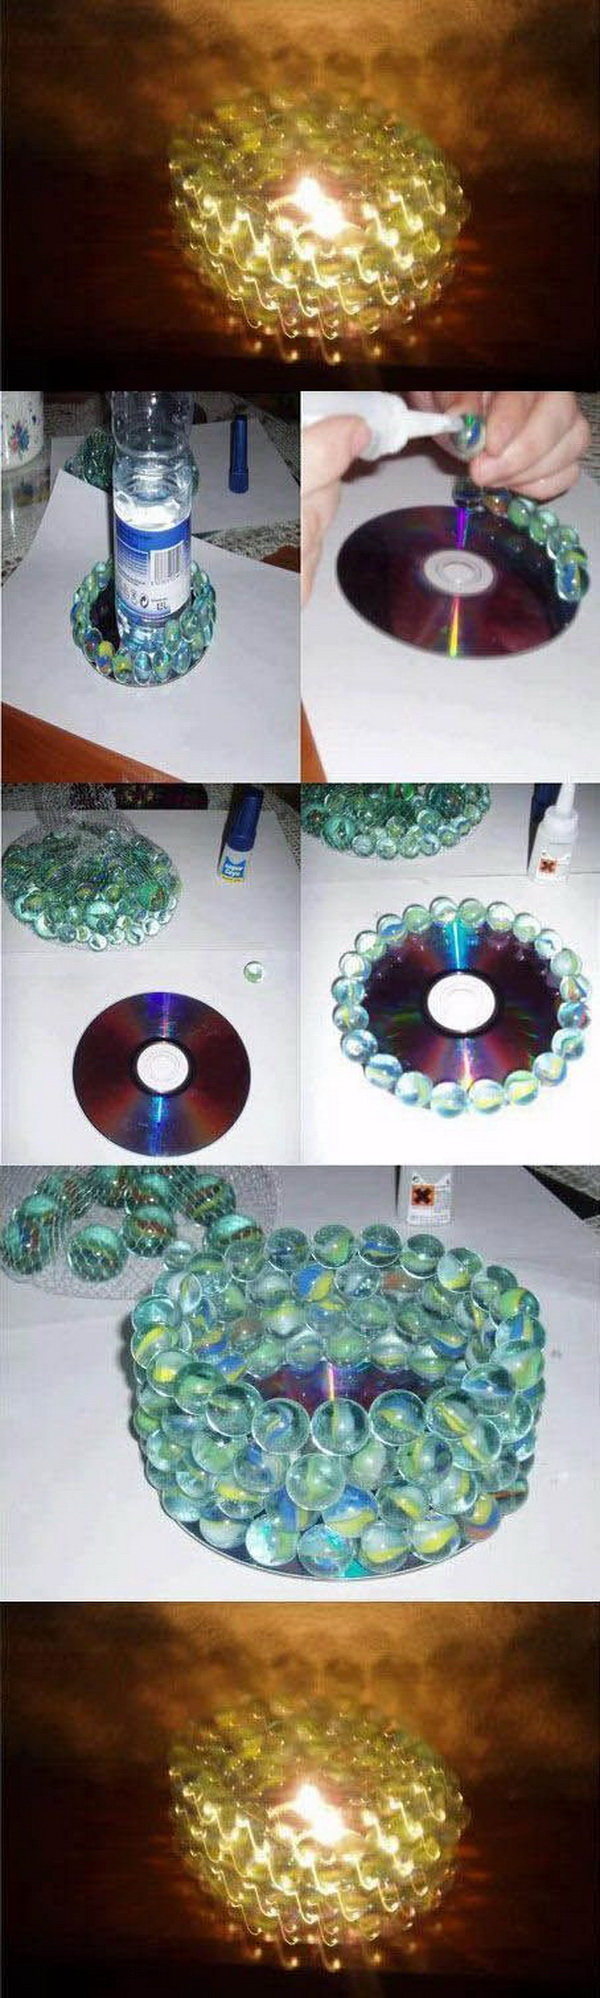 DIY Candle Holder Made with CD and Old Marbles.